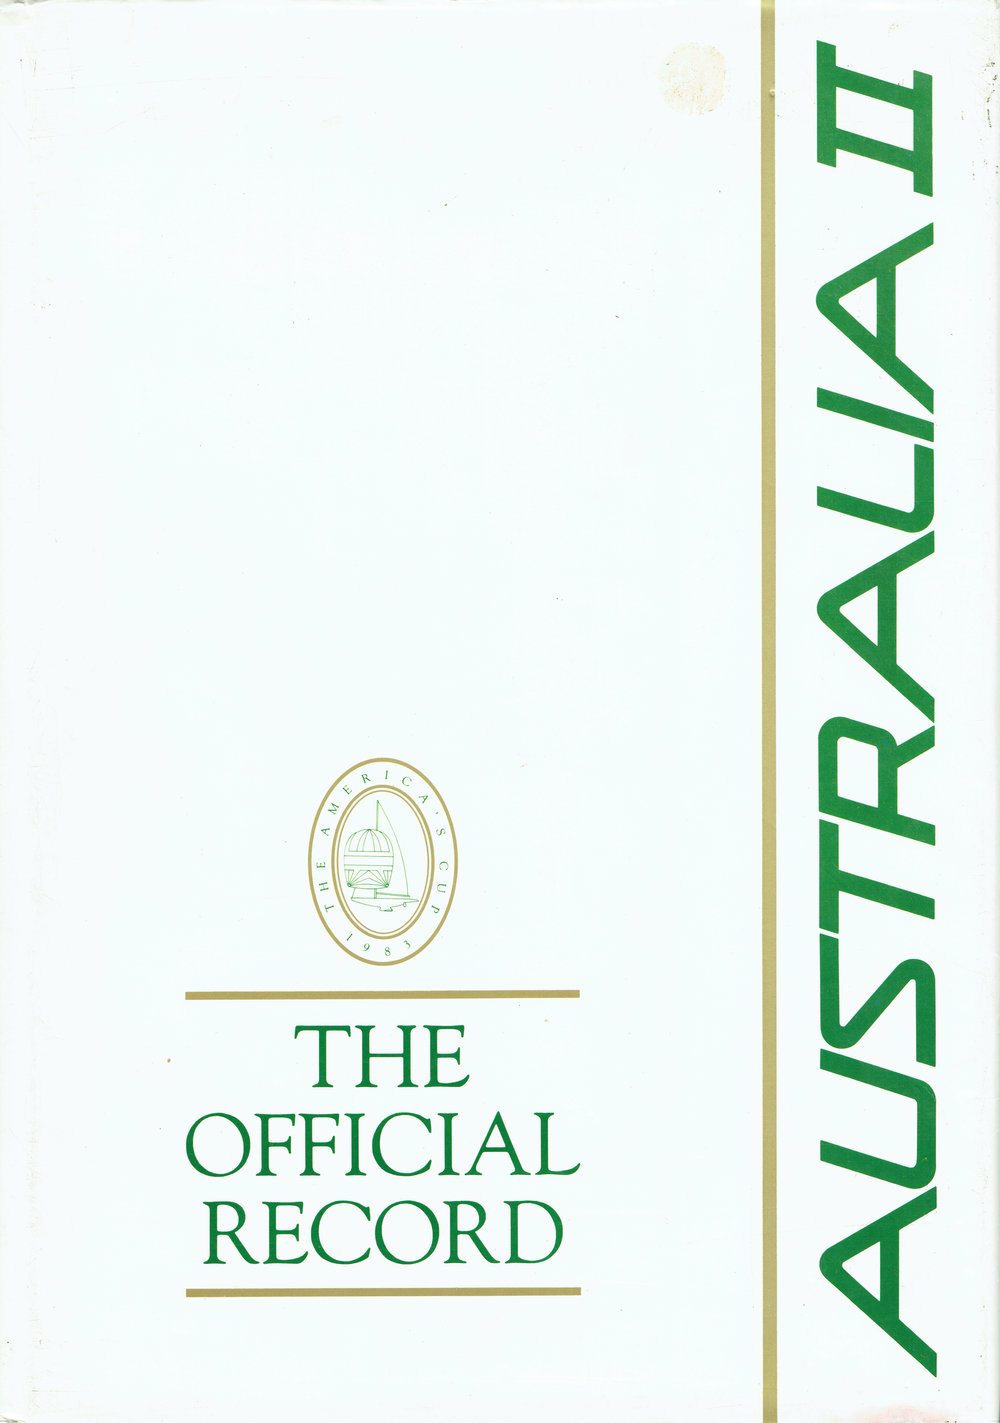 Australia II The Official Record.jpg